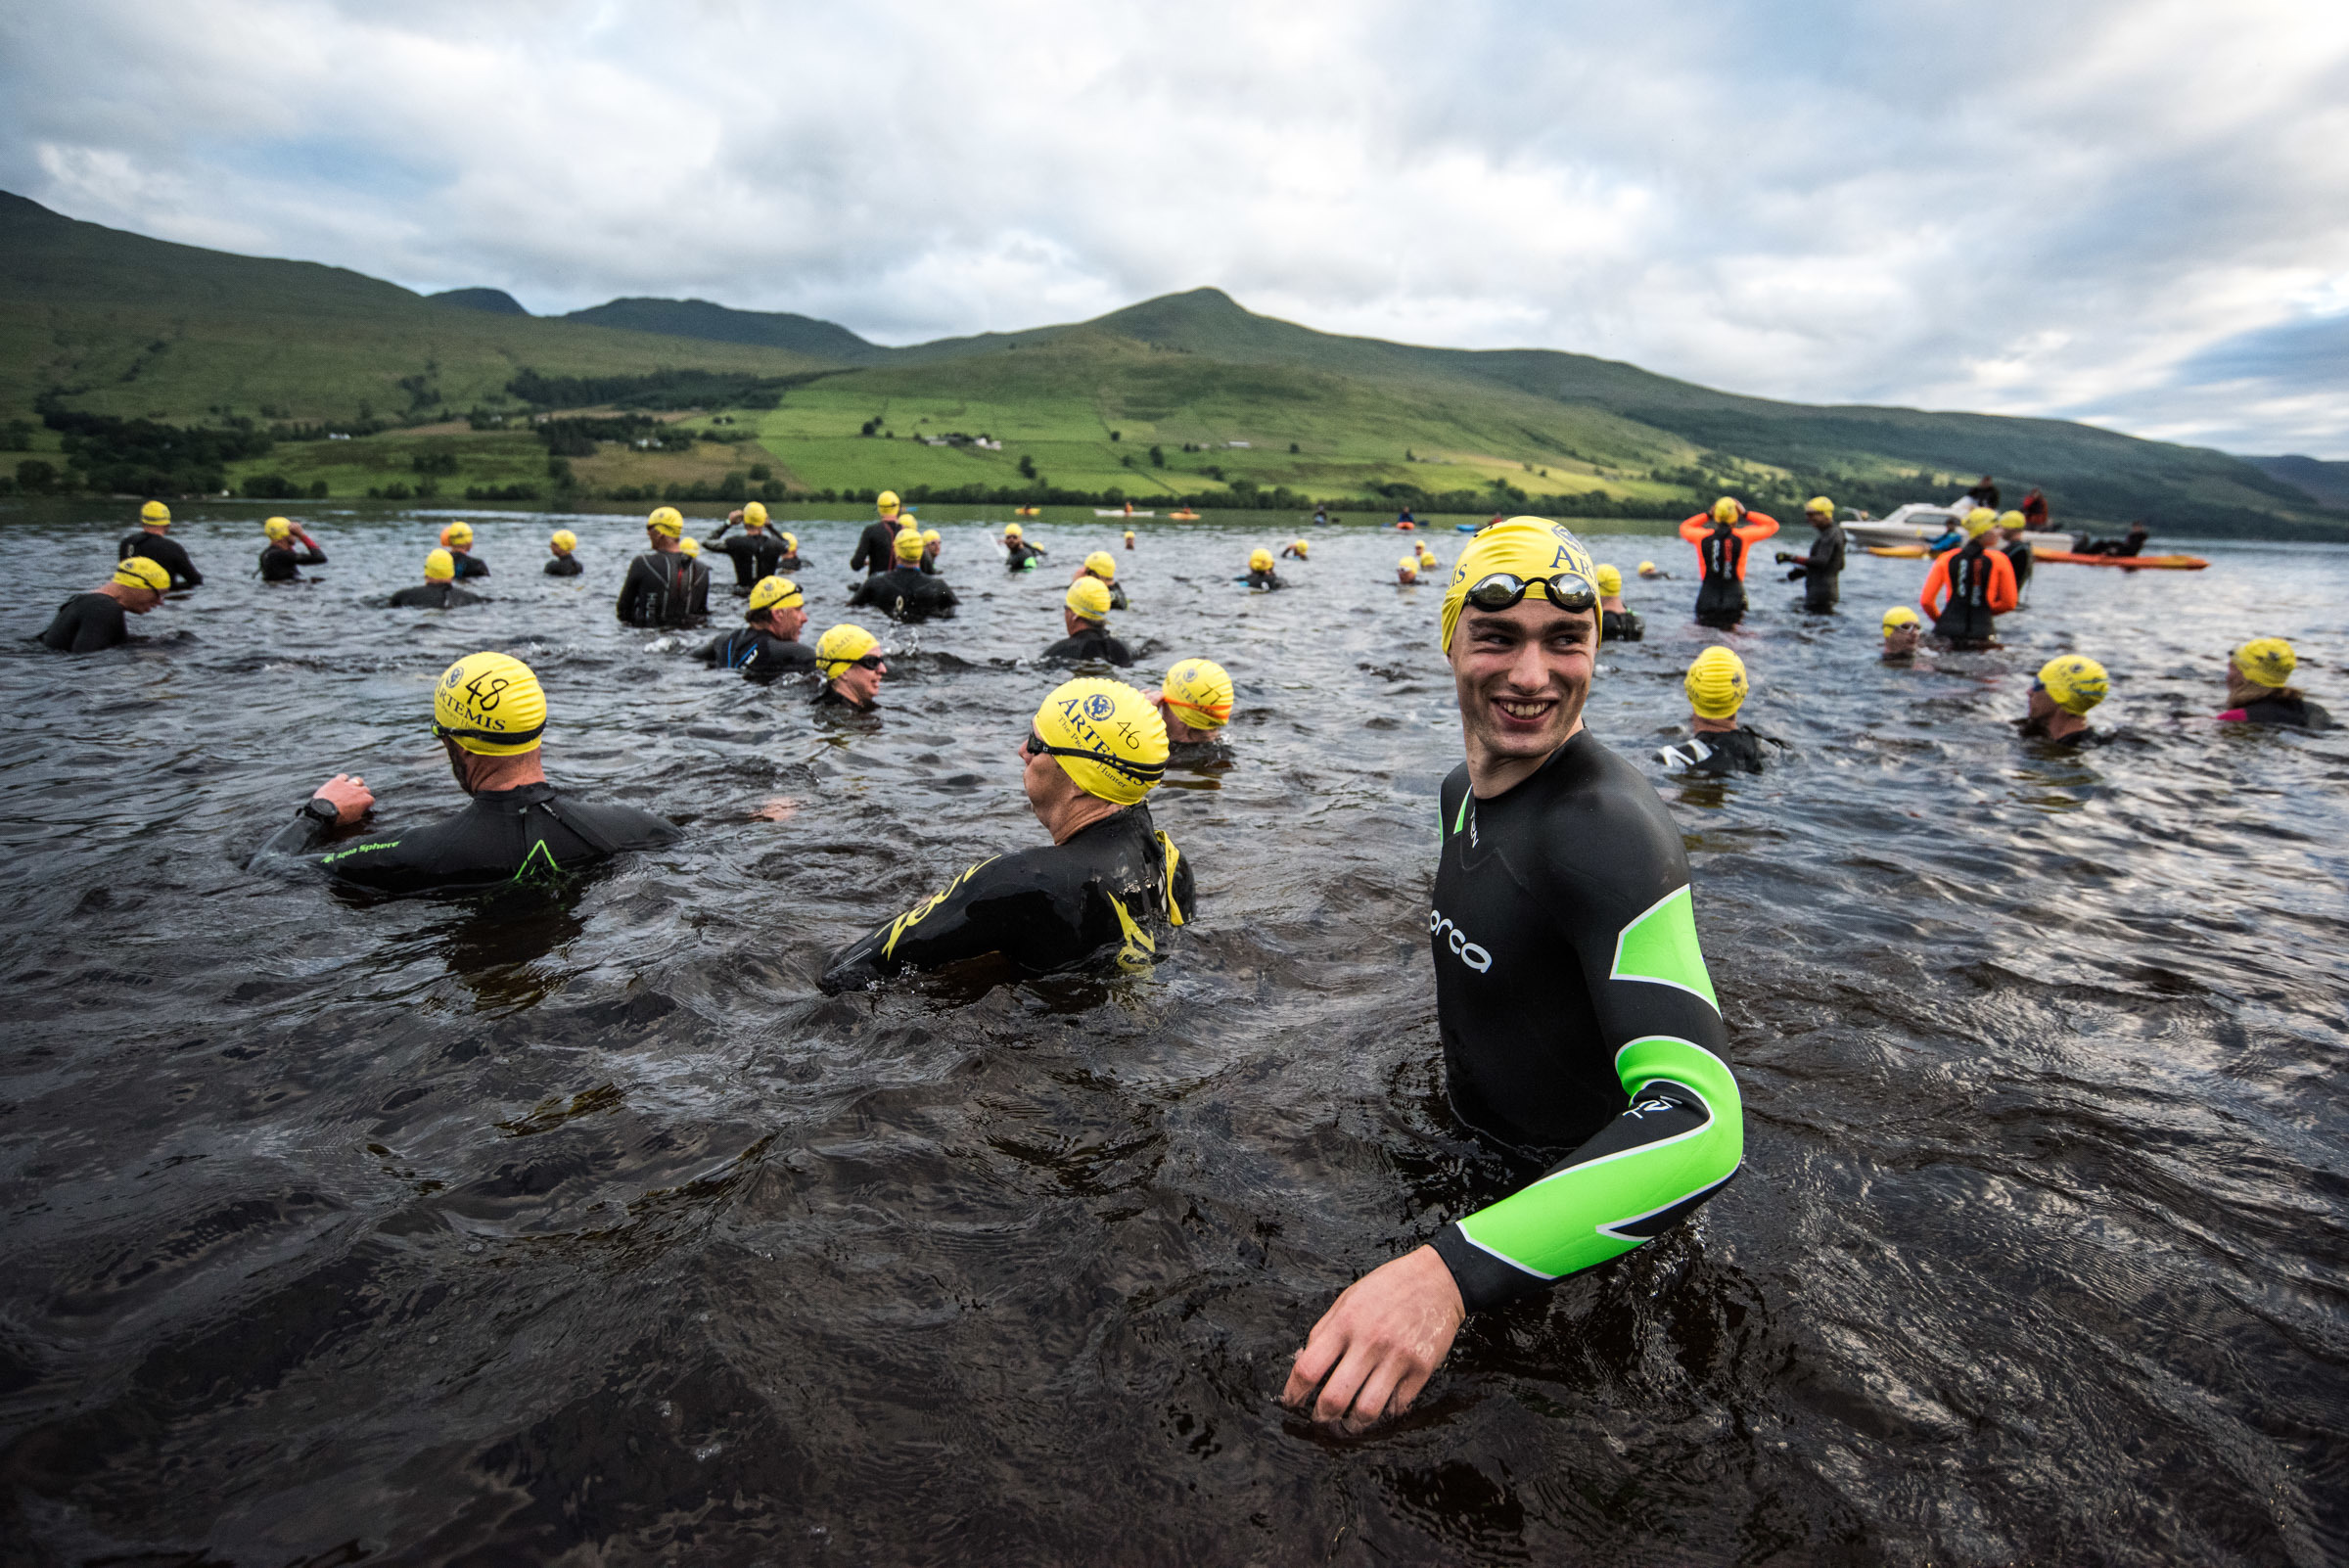 Swimmers step into the water for the start of the Artemis Great Kindrochit Quadrathlon 2017.